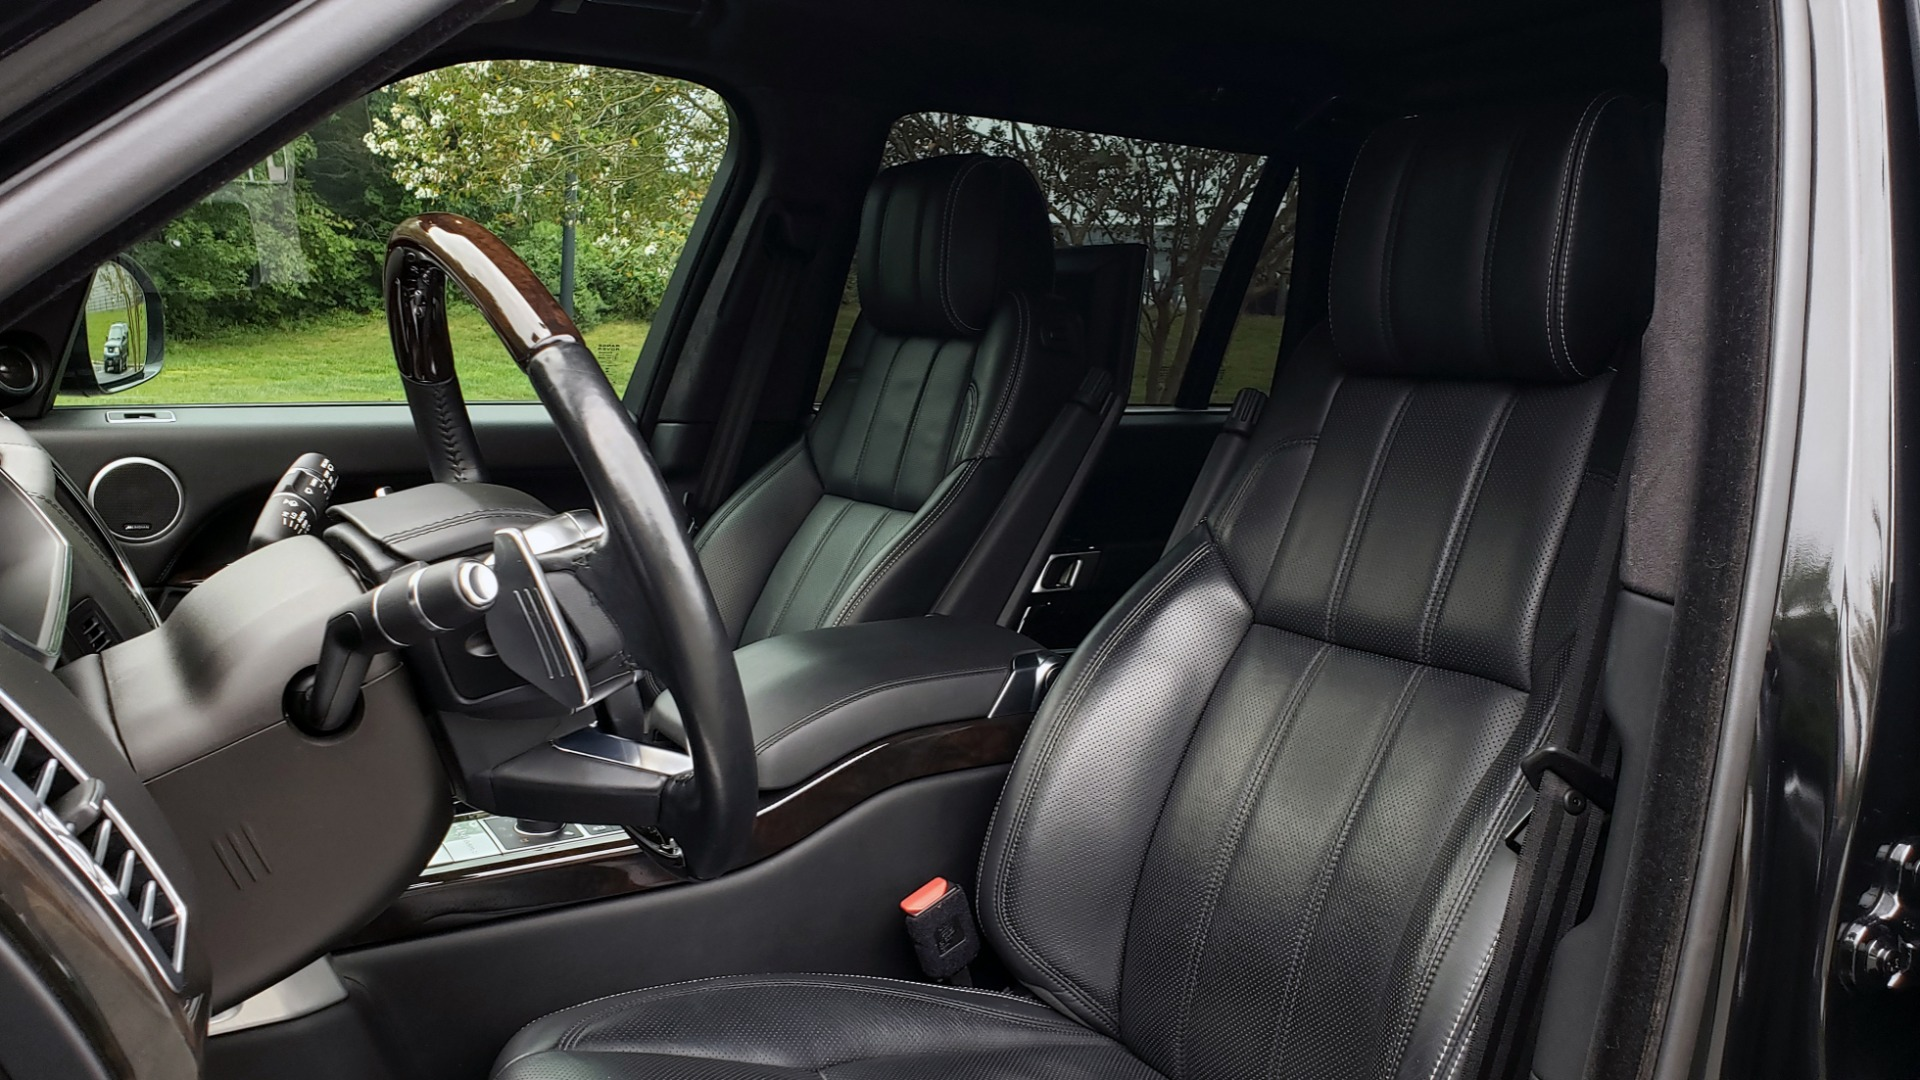 Used 2016 Land Rover RANGE ROVER AUTOBIOGRAPHY / SC-V8 / LWB / PANO-ROOF / NAV / MERIDIAN / ENT / REARVIEW for sale $71,495 at Formula Imports in Charlotte NC 28227 47